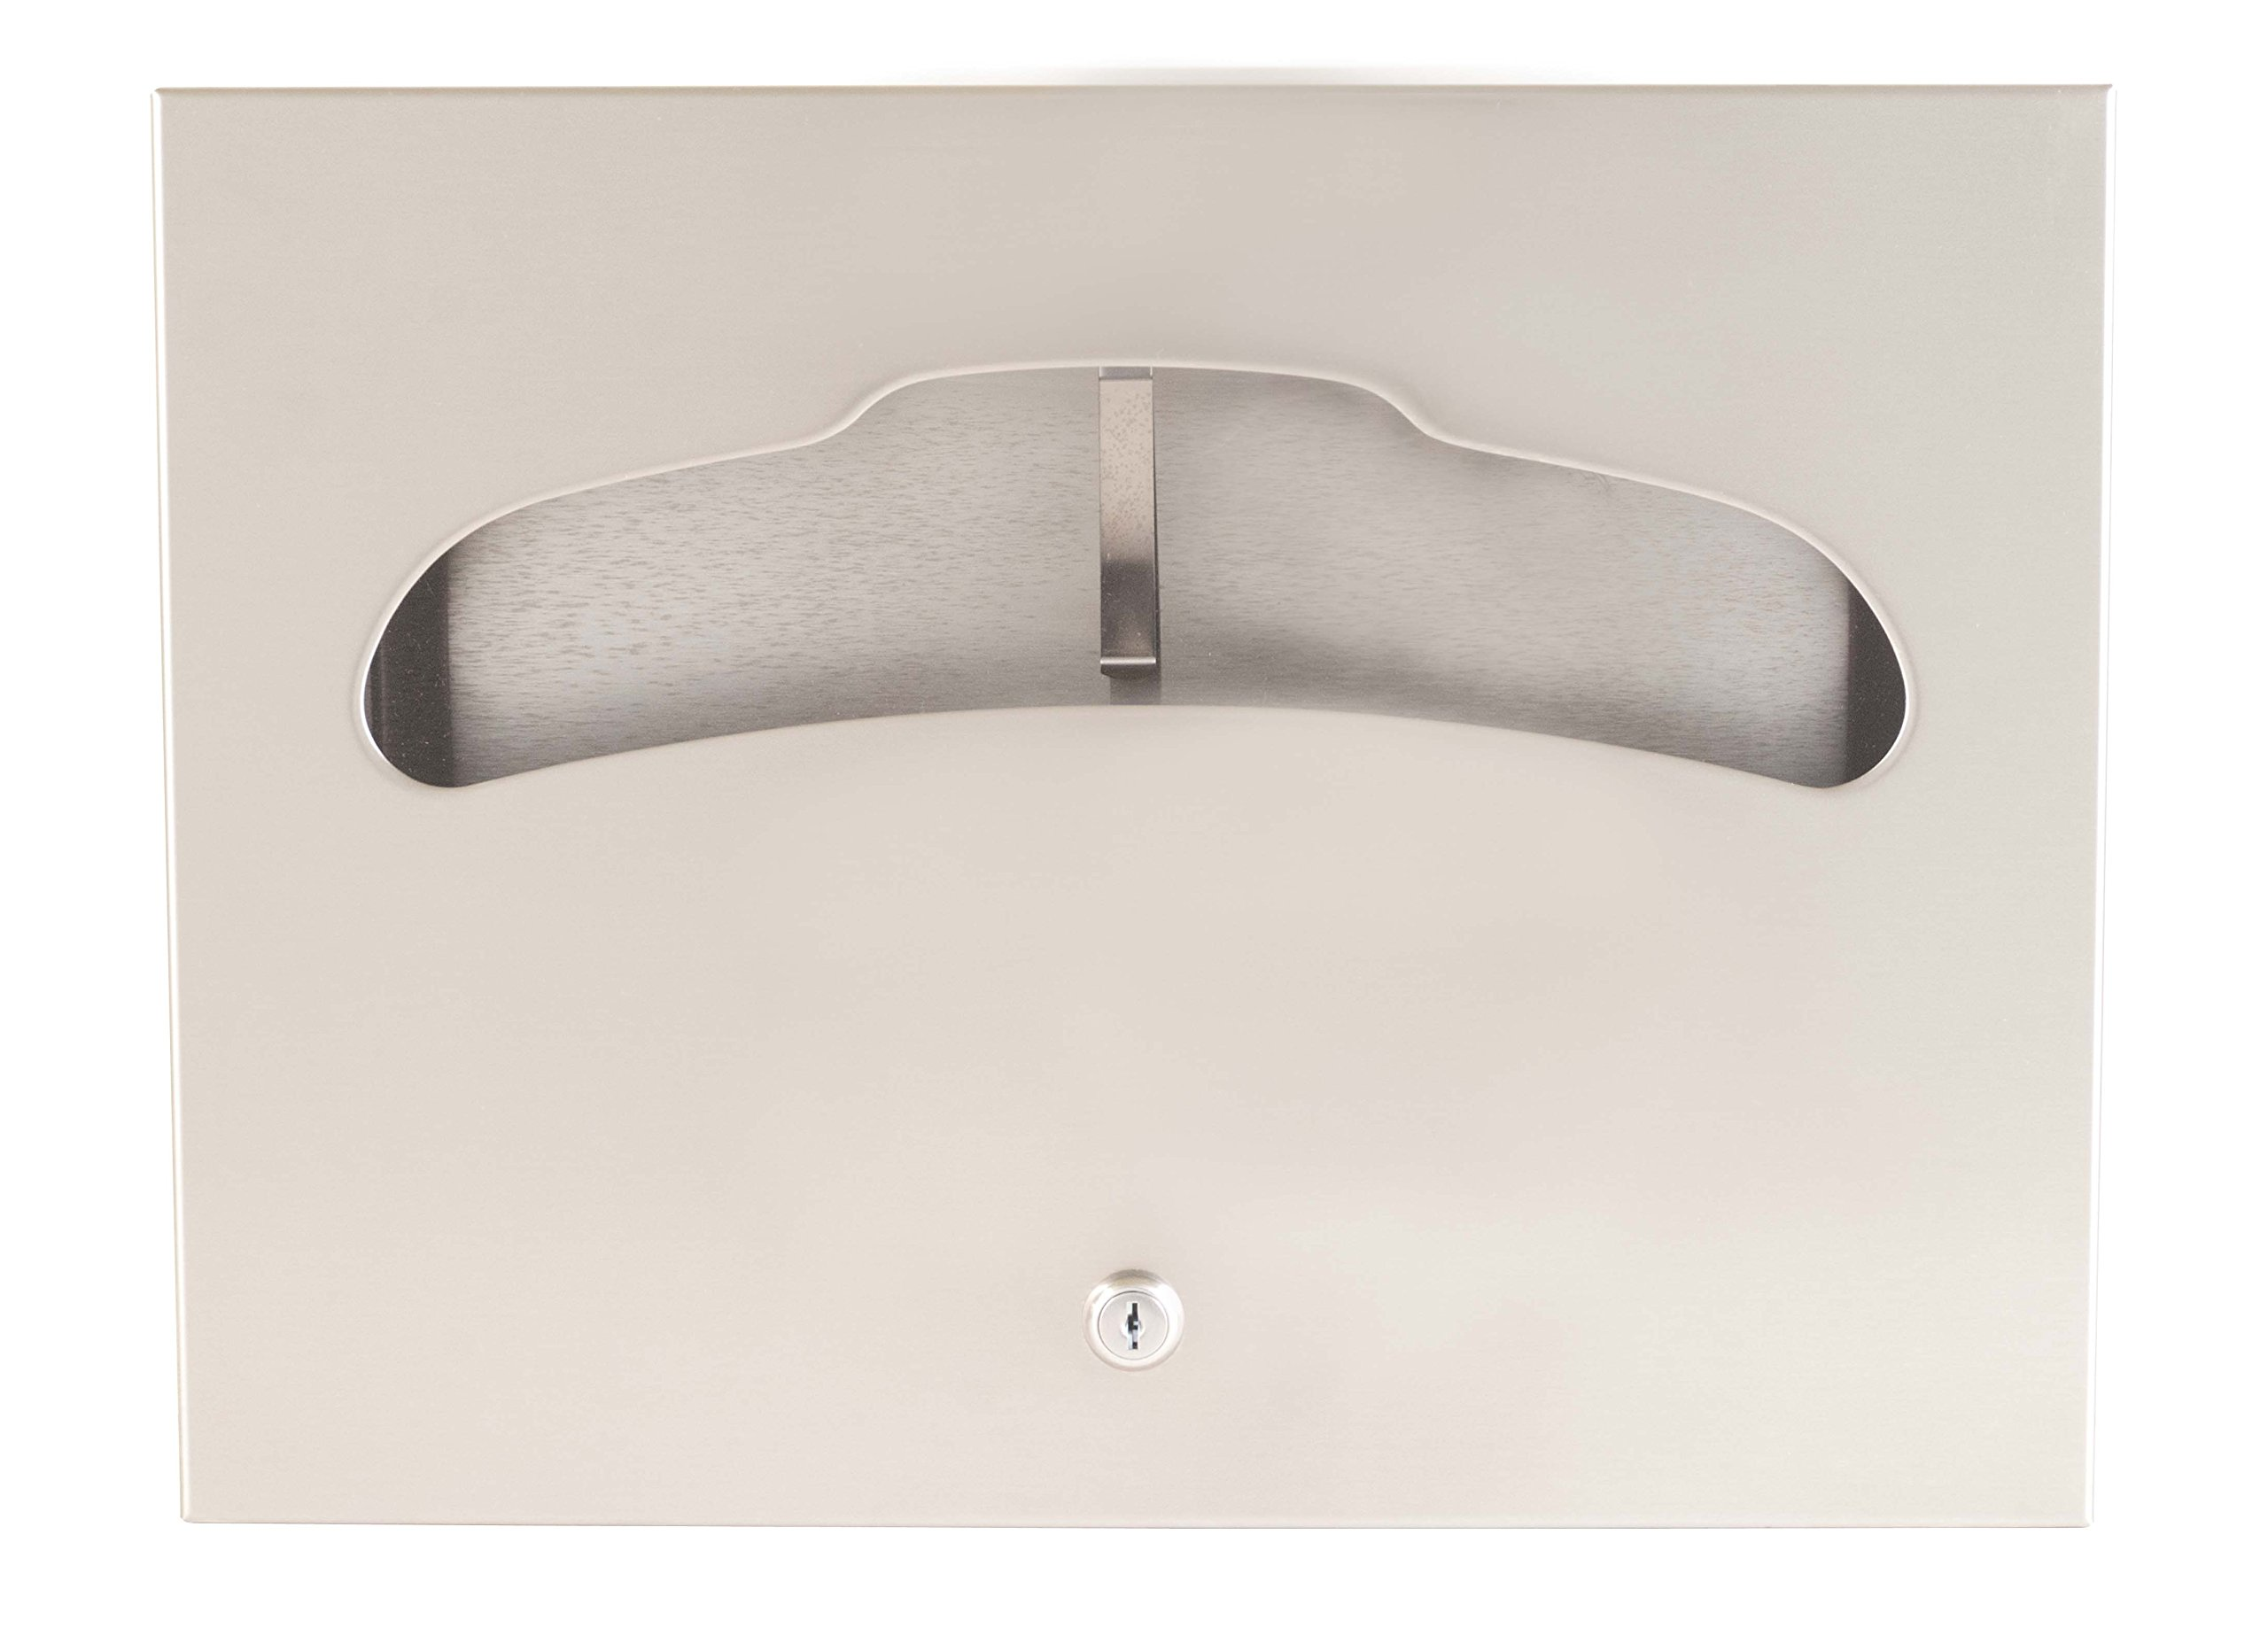 Bradley 5847-000000 Stainless Steel Recessed Mounted Toilet Seat Cover Dispenser, 500 Capacity, 17-3/8'' Width x 13'' Height x 3-1/4'' Depth by Bradley